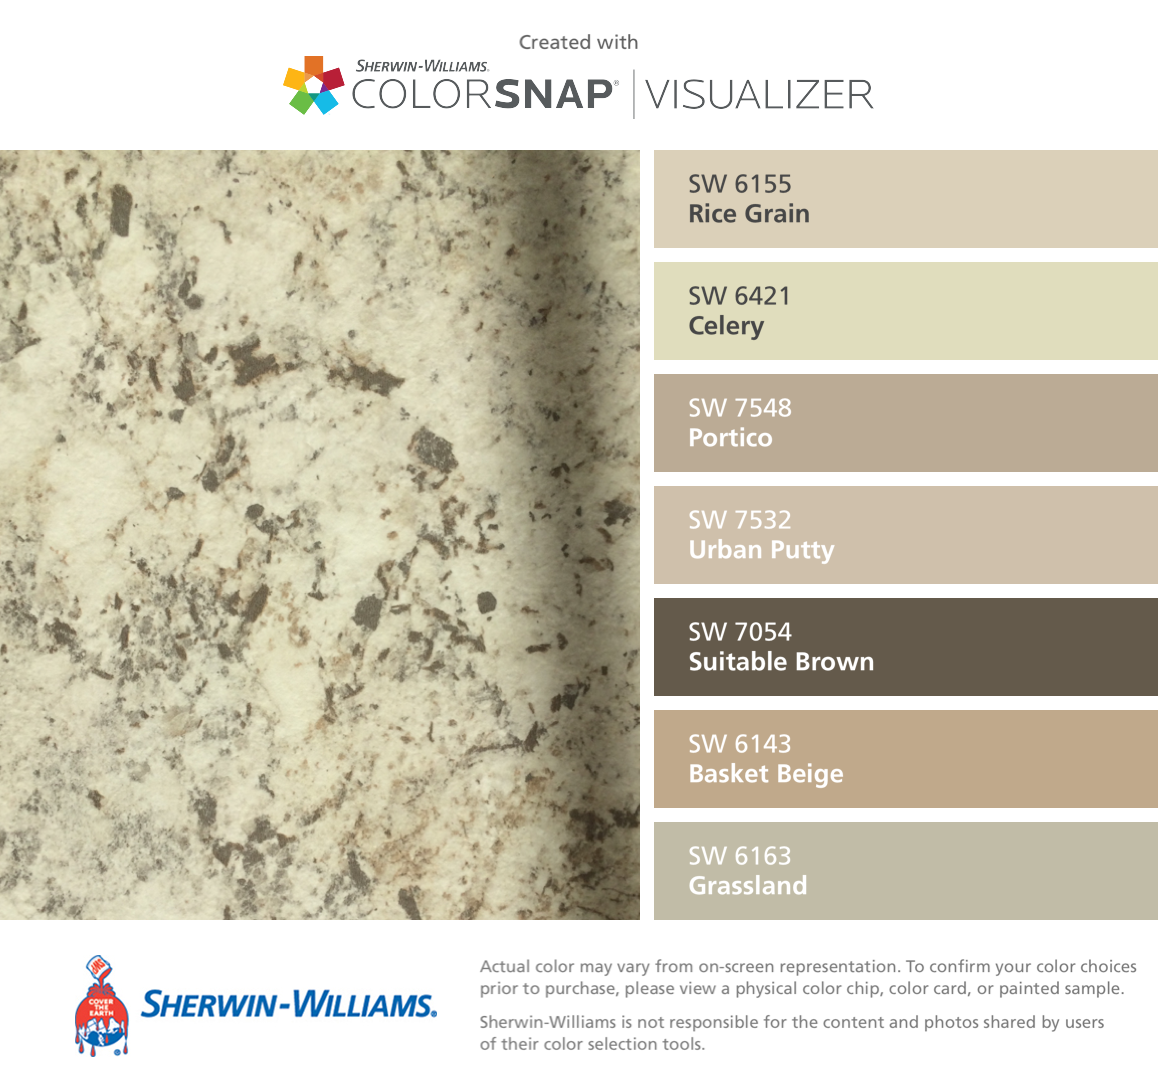 Sherwin williams basket beige photos - I Found These Colors With Colorsnap Visualizer For Iphone By Sherwin Williams Rice With Basket Beige Sherwin Williams